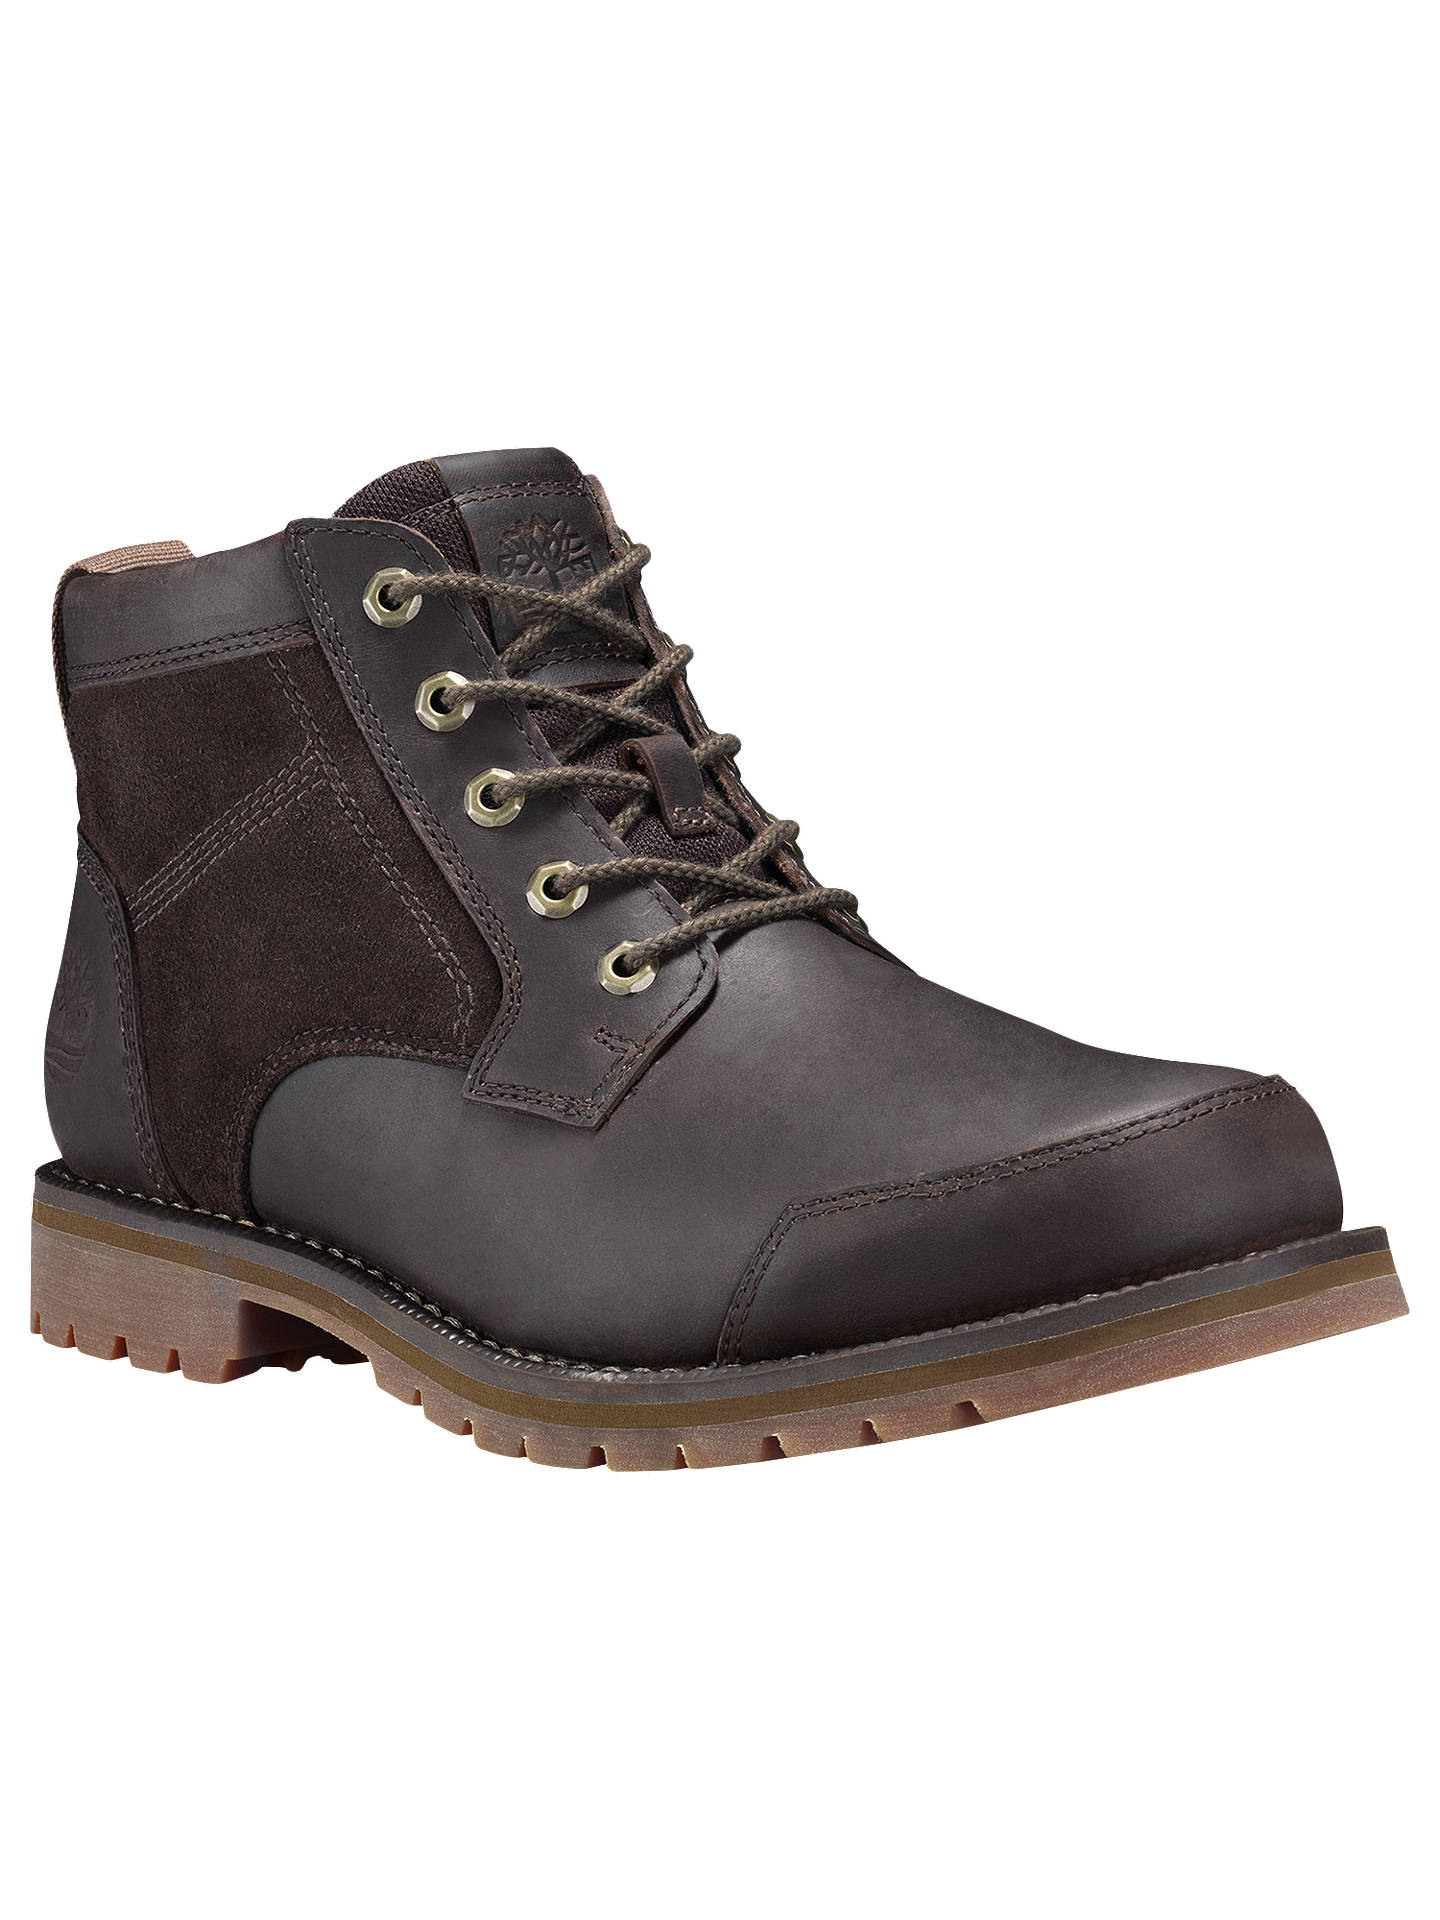 Buy Timberland Larchmont Waterproof Chukka Boots, Brown, 7 Online at johnlewis.com